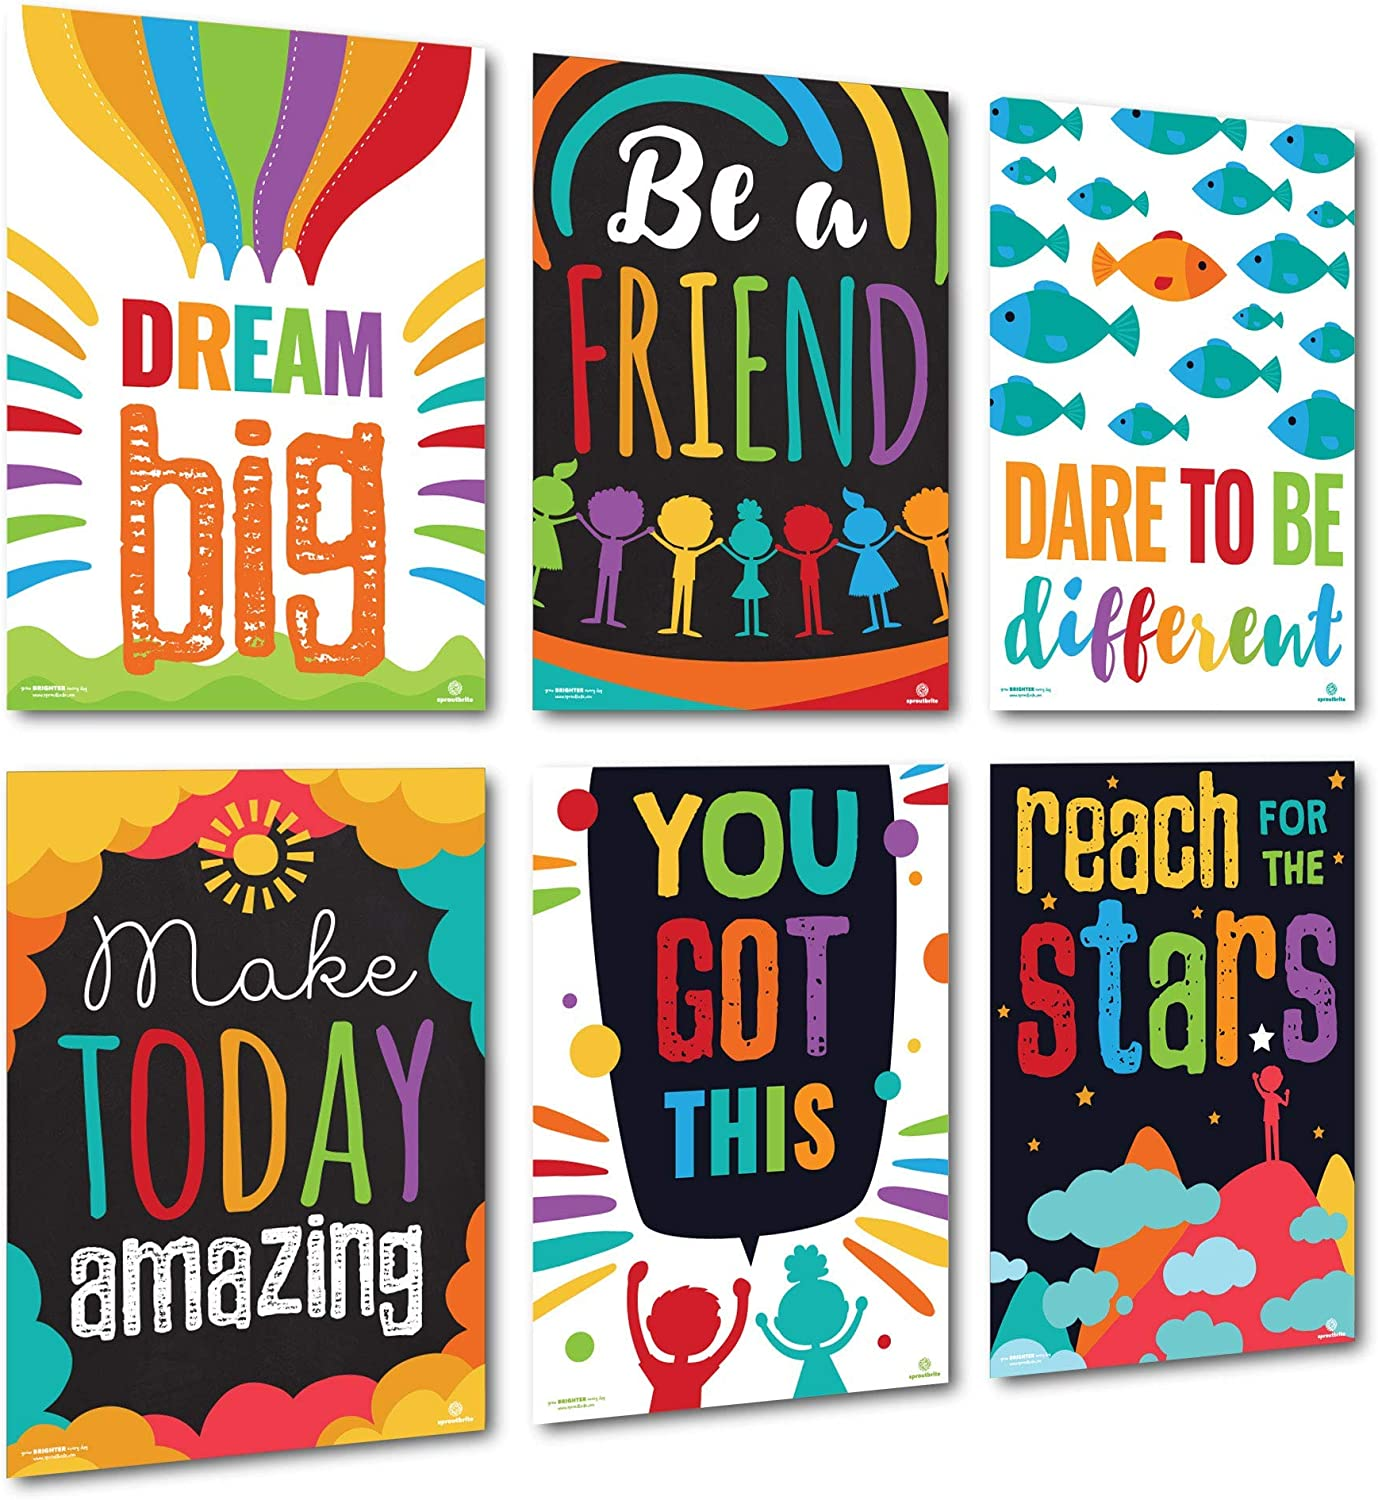 Sproutbrite Classroom Decorations - Posters for Teachers - Bulletin Board and Wall Decor for Pre School, Elementary and Middle School